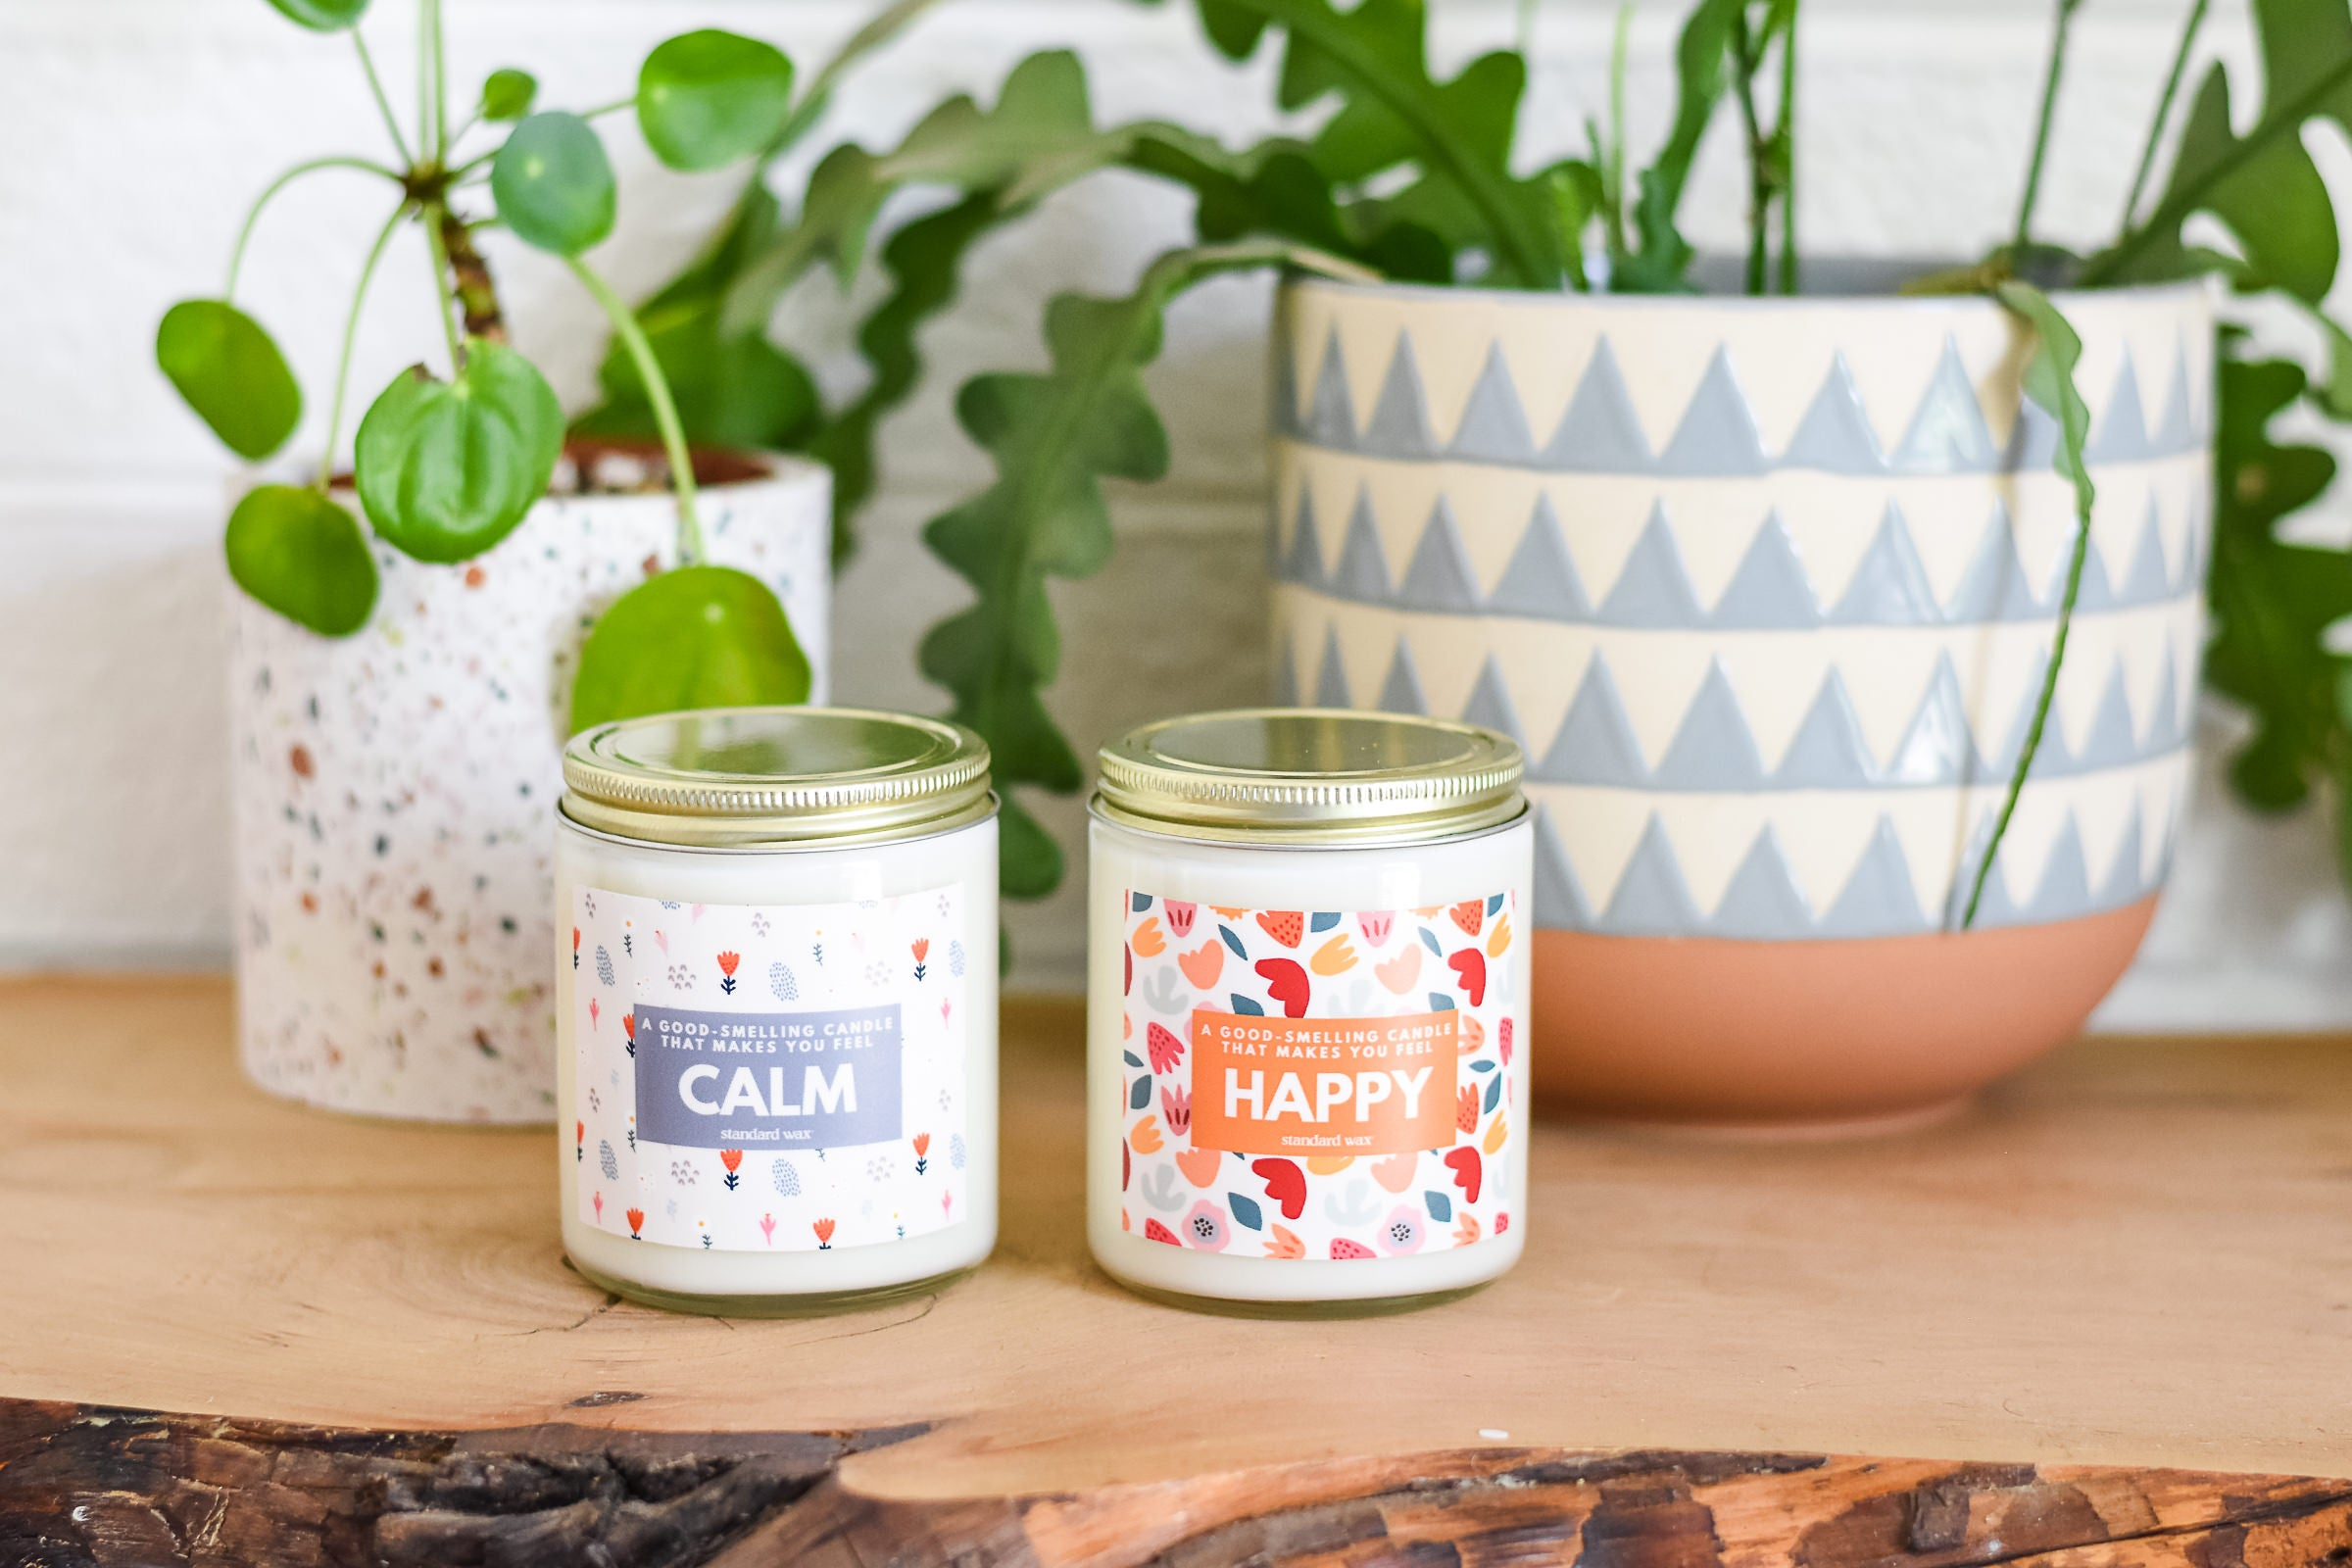 Standard Wax Mother's Day Candles